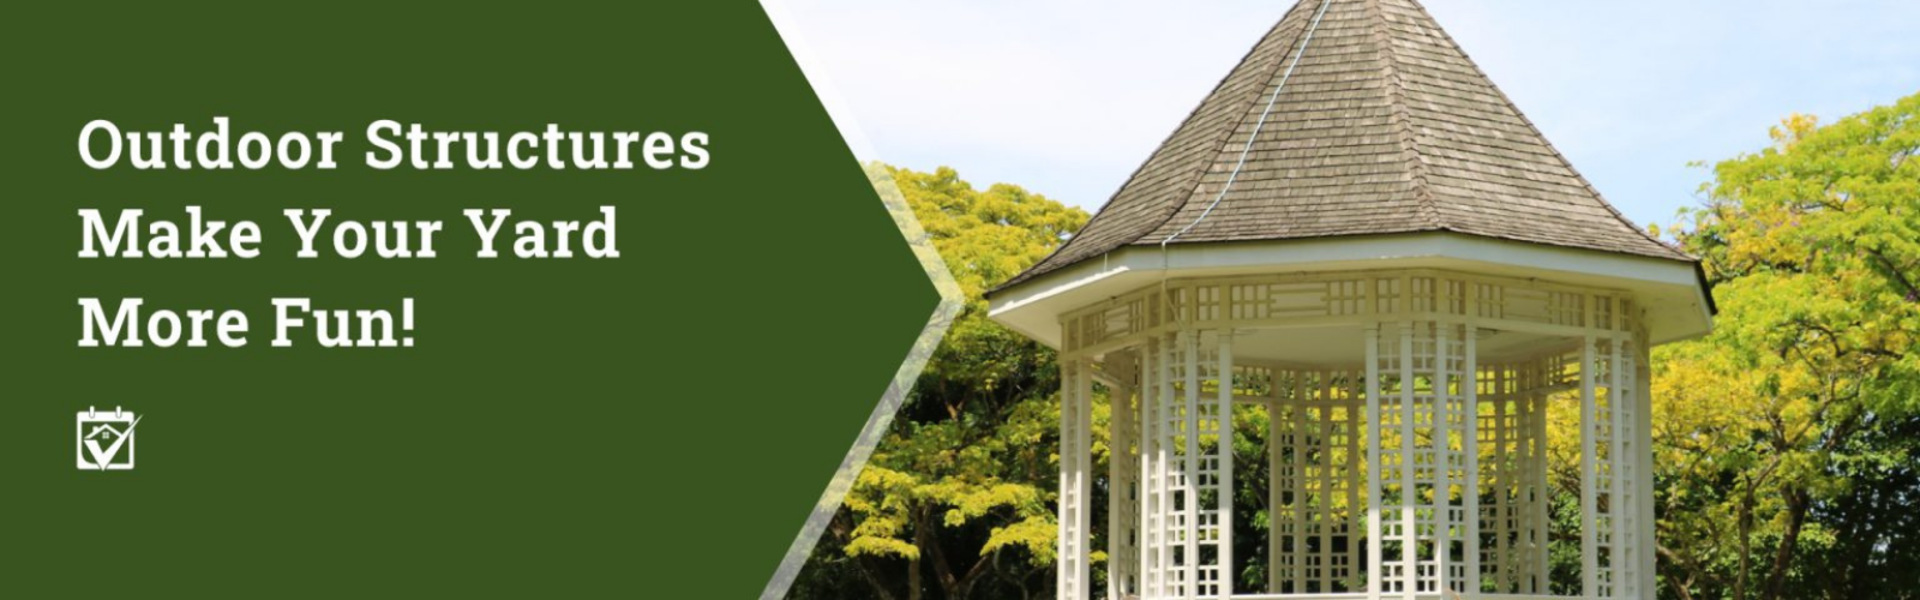 Outdoor Structures Make Your Yard More Fun!